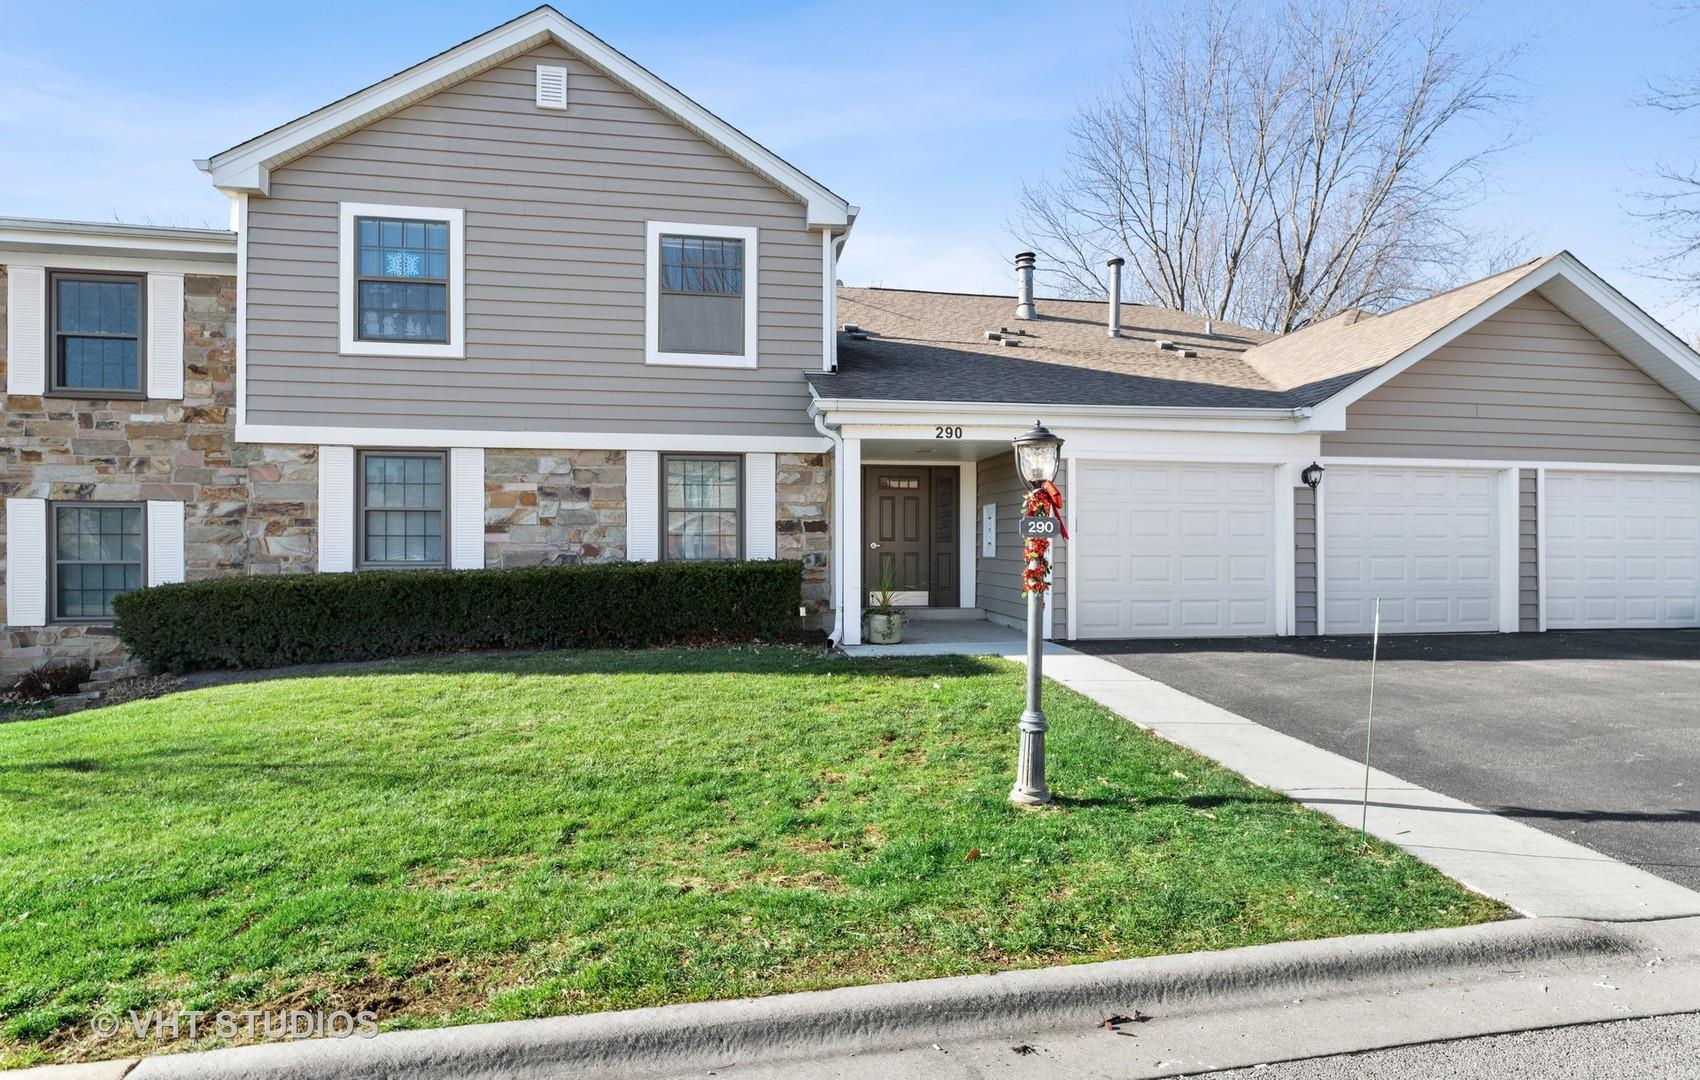 290 Pembridge Lane #D1, Schaumburg, IL 60193 - #: 10937135